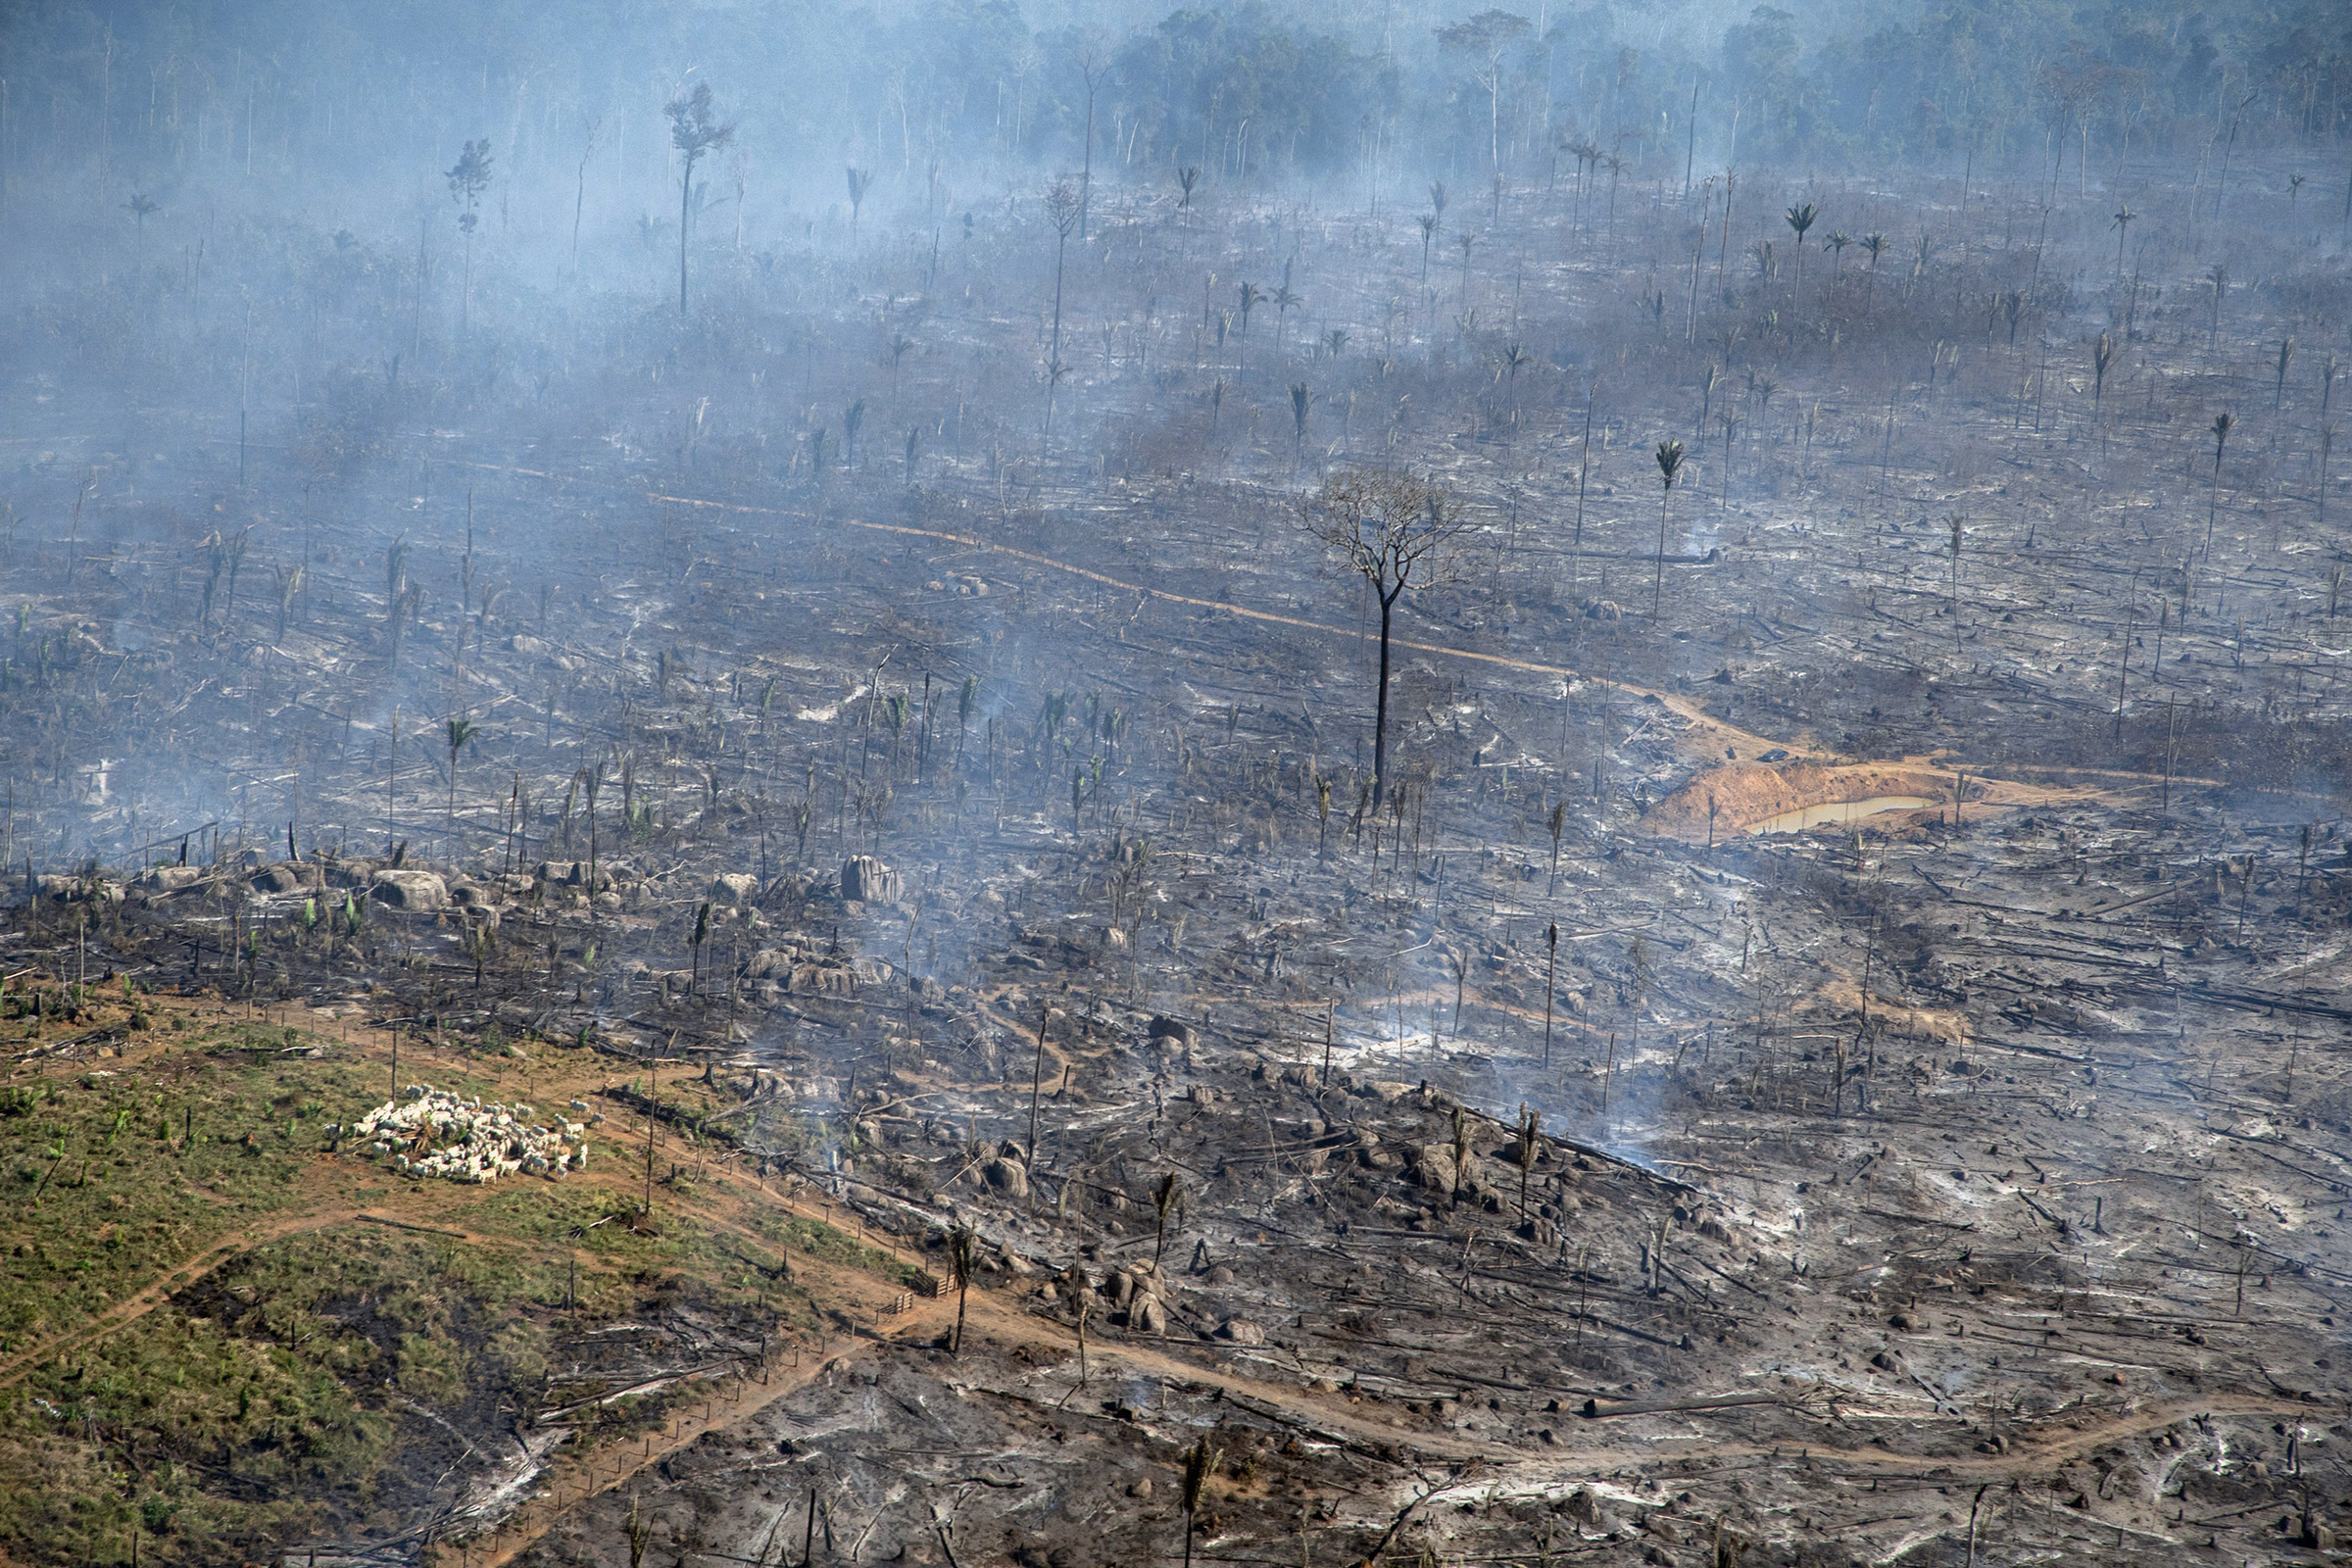 Deforested and burnt area already being used for cattle ranching in Porto Velho, Rondônia on July 30, 2021. Photo © Christian Braga / Greenpeace